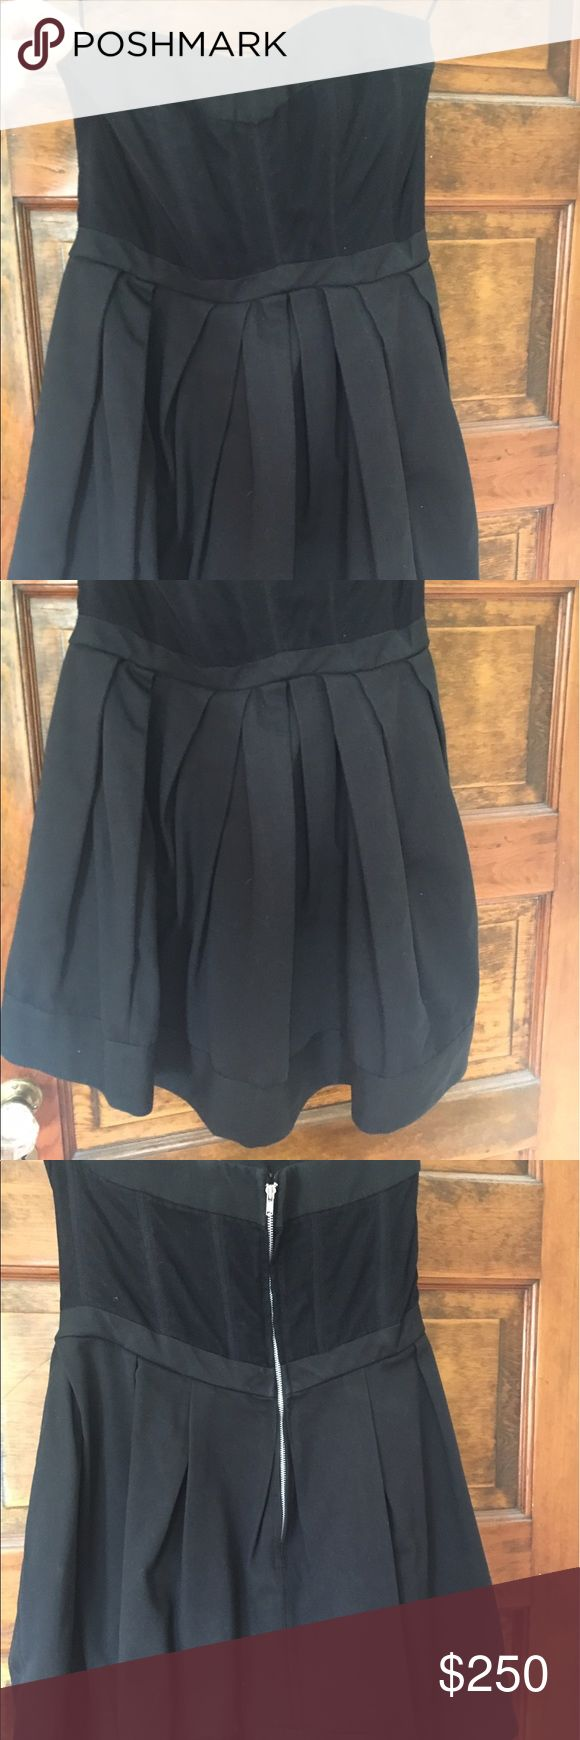 Jill Stuart Strapless Cocktail Dress - WORN ONCE!! Adorable cocktail dress. Sweetheart neckline with short mini skirt. Strapless mesh top with boning. Tight in the waist and poofs out. So cute and classic. Worn once to a wedding. Great condition. Jill Stuart Dresses Strapless